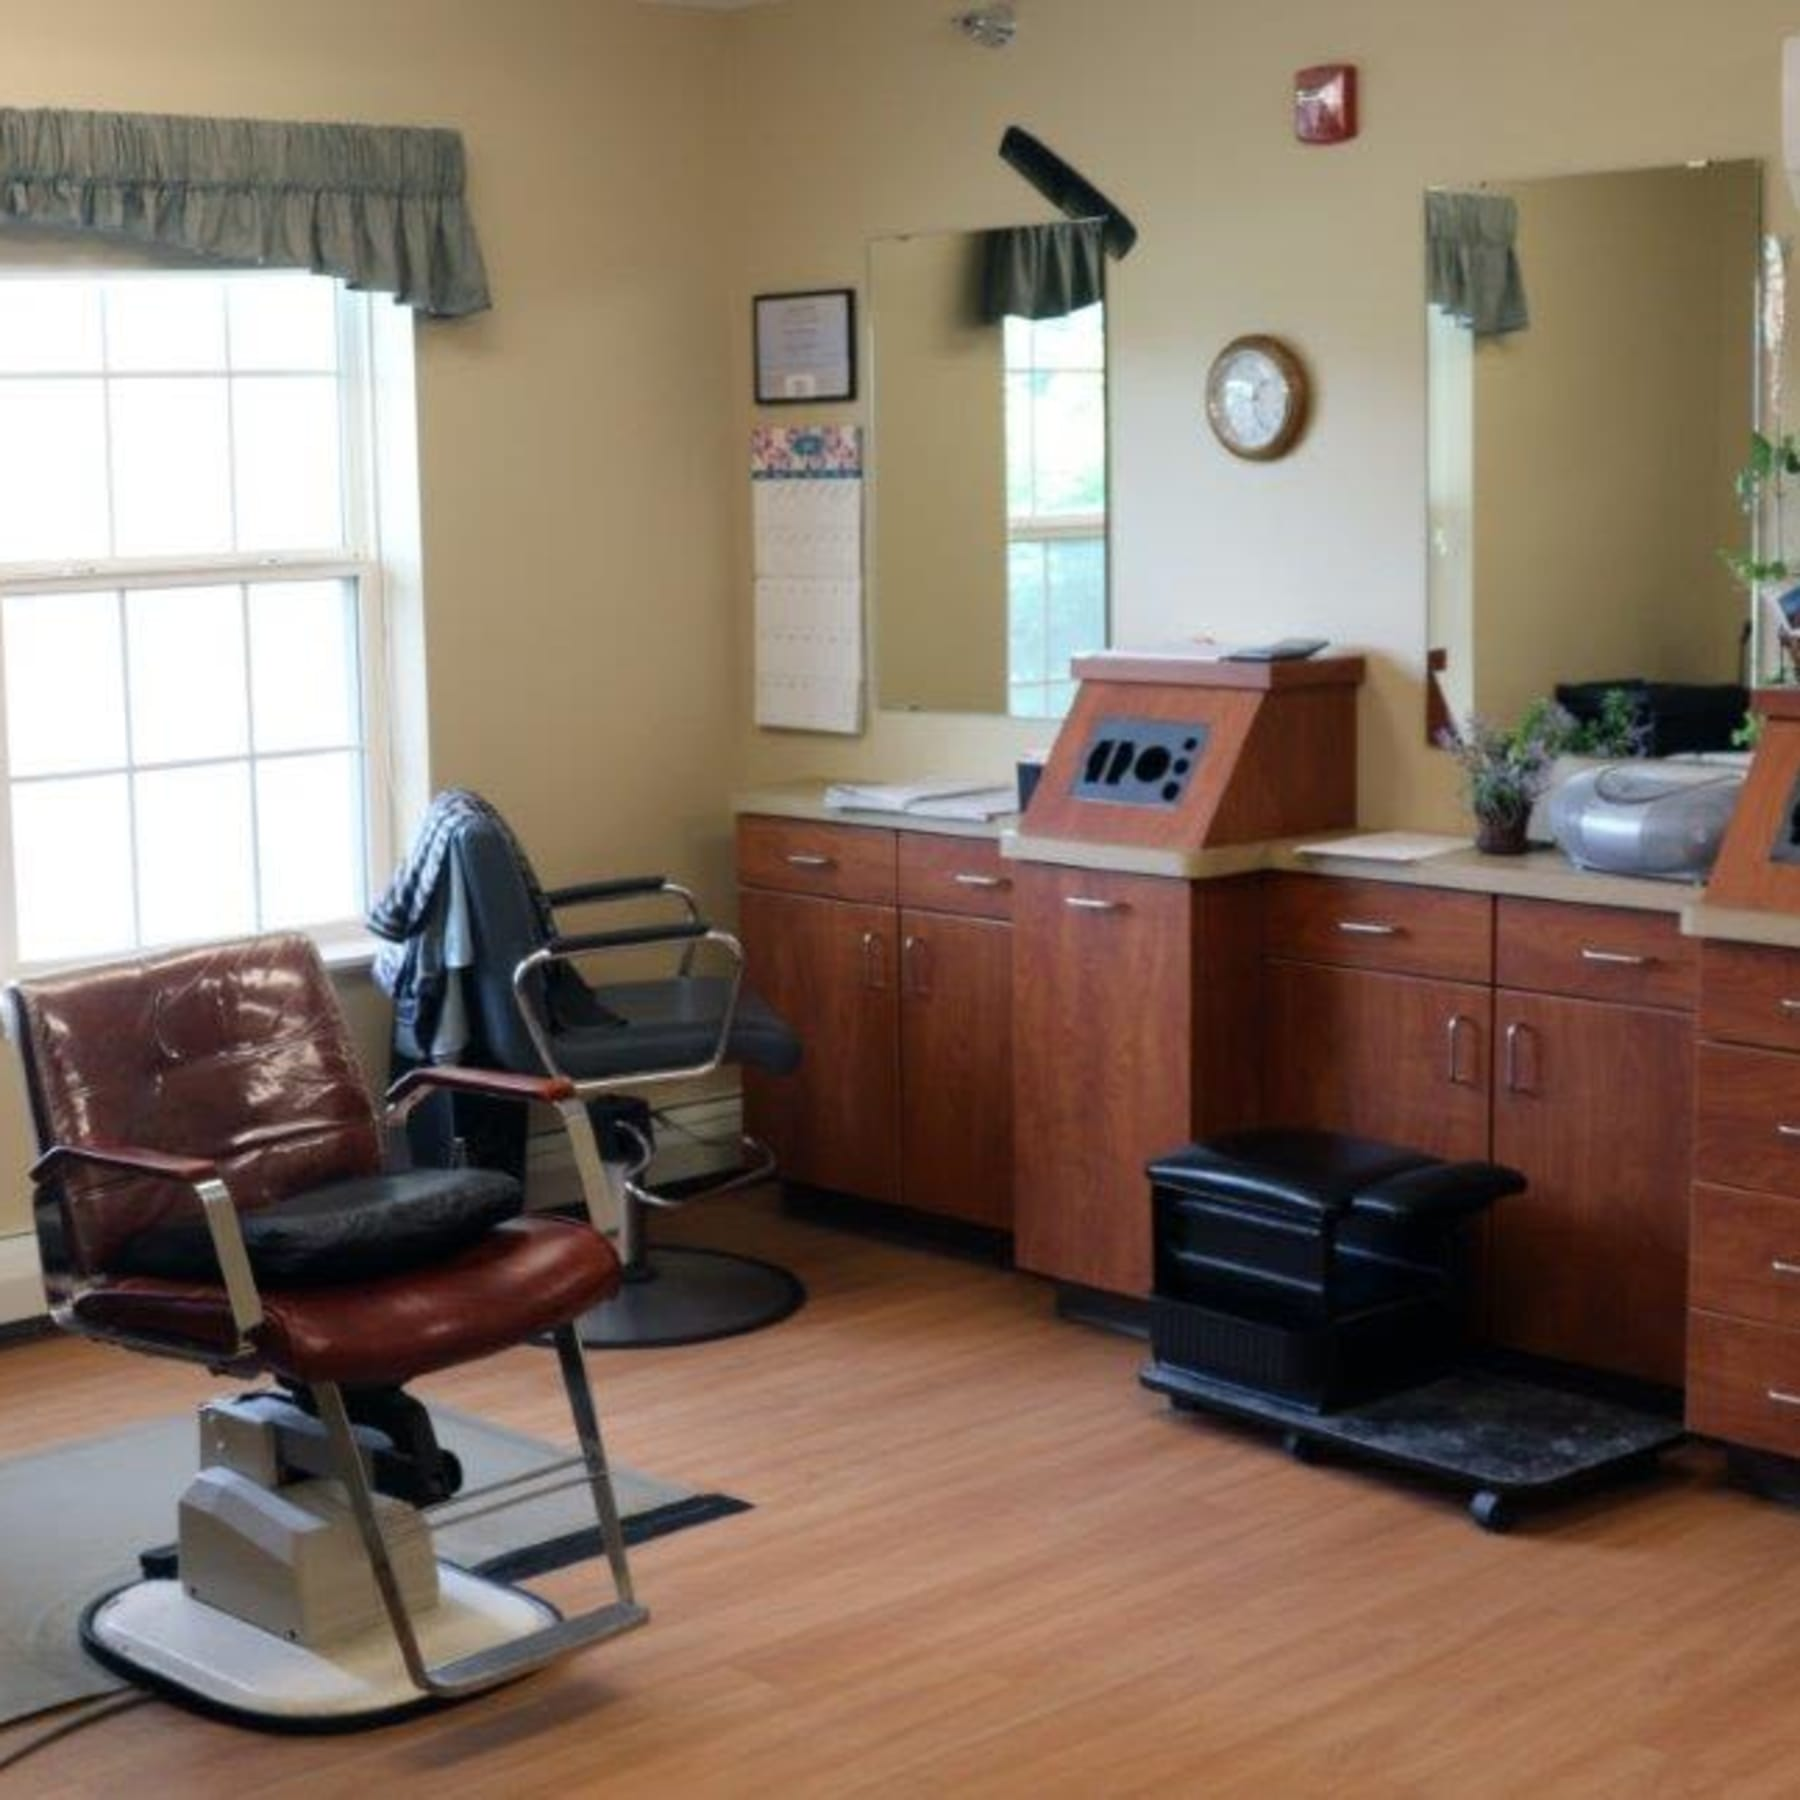 On-site hair salon at Keelson Harbour in Spirit Lake, Iowa.